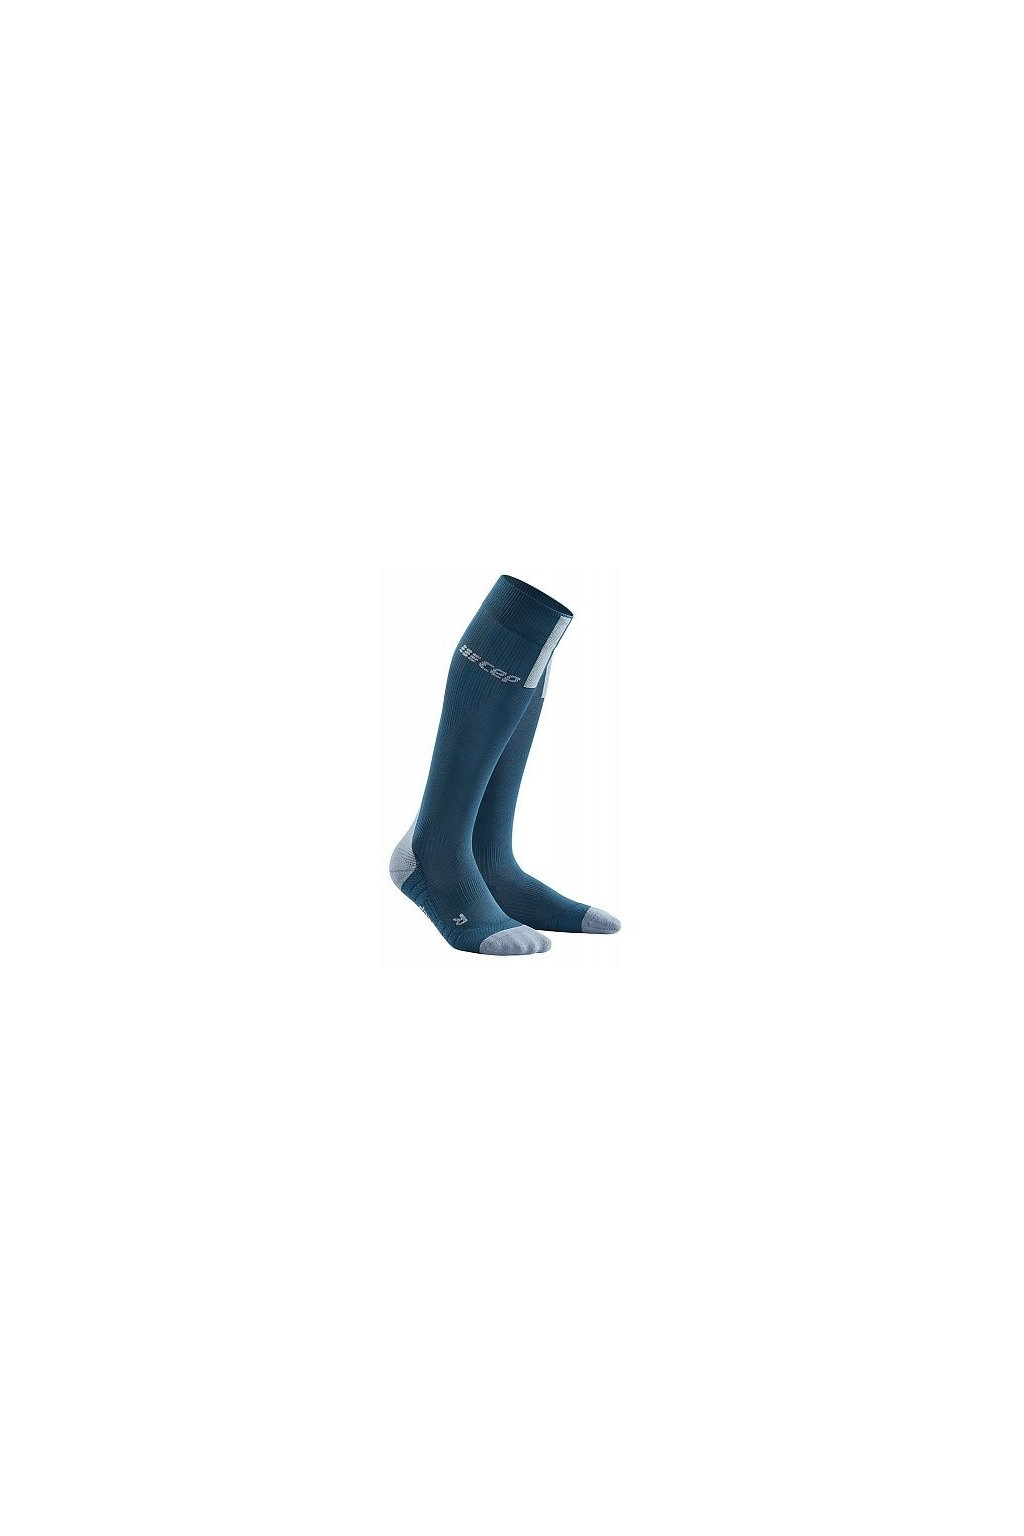 400x400 Run Compression Socks 3.0 blue grey WP50DX m WP40DX w pair front